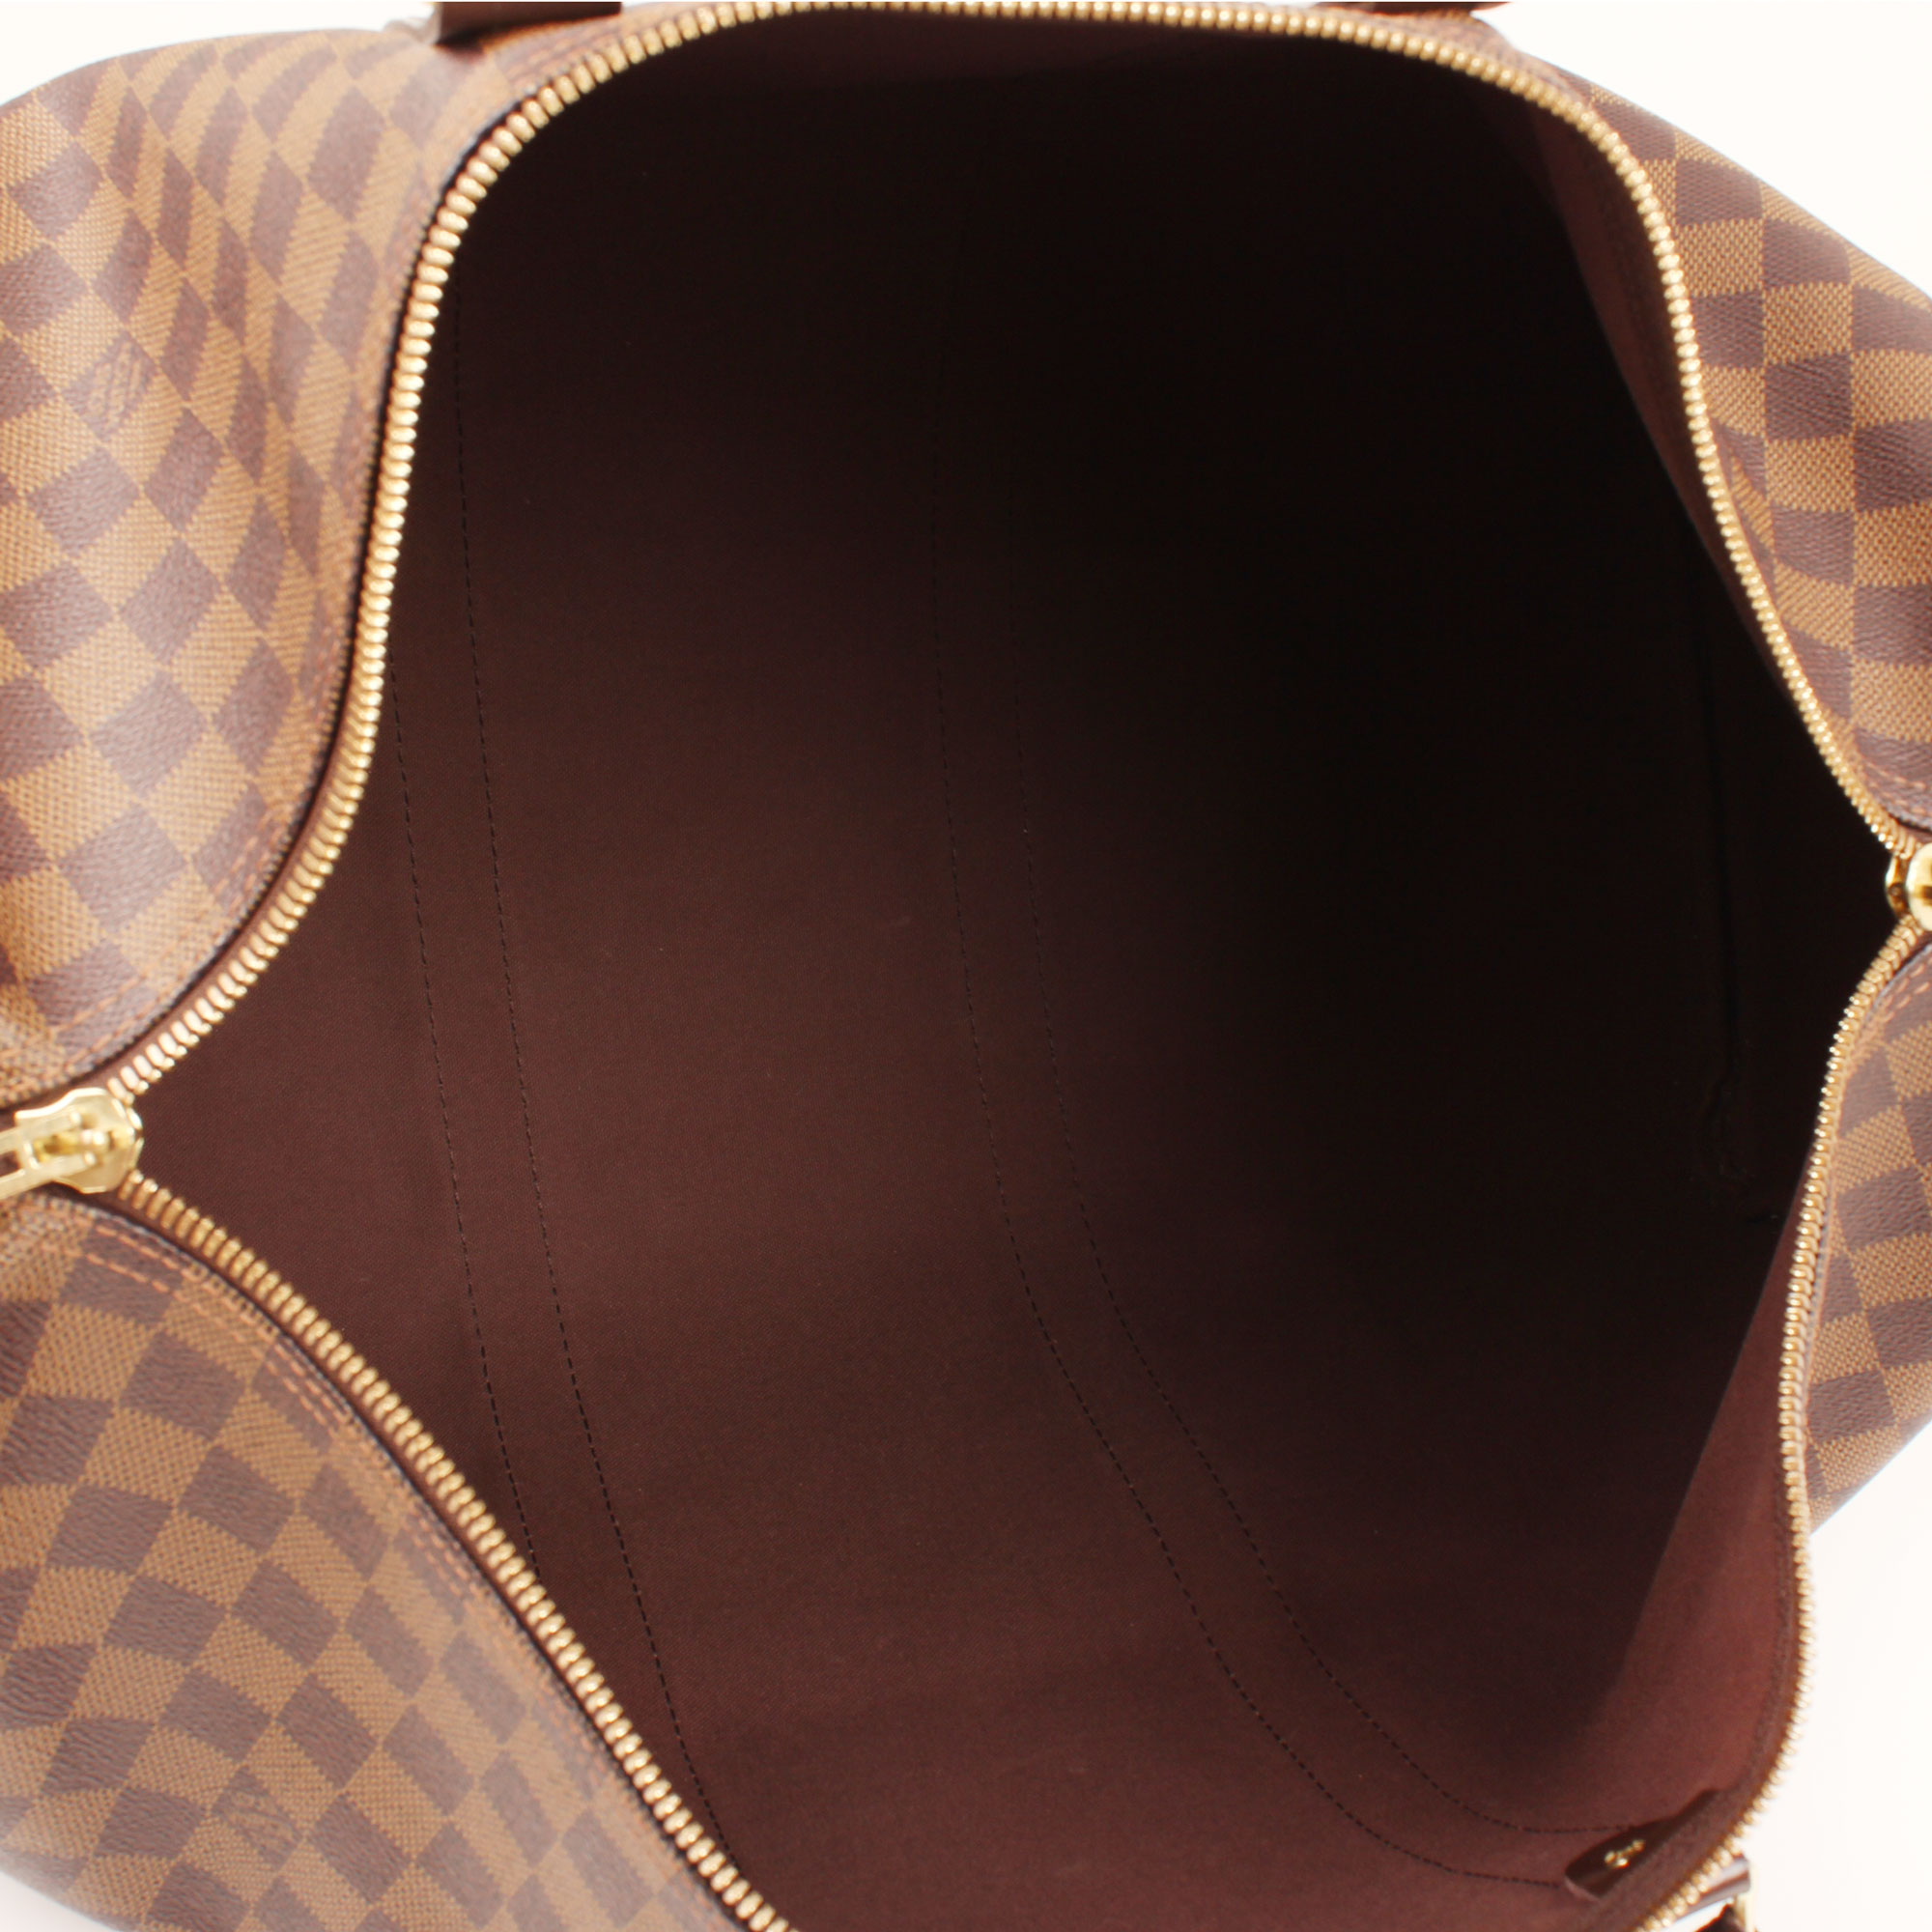 travel-bag-louis-vuitton-keepall-50-damier-ebene-interior